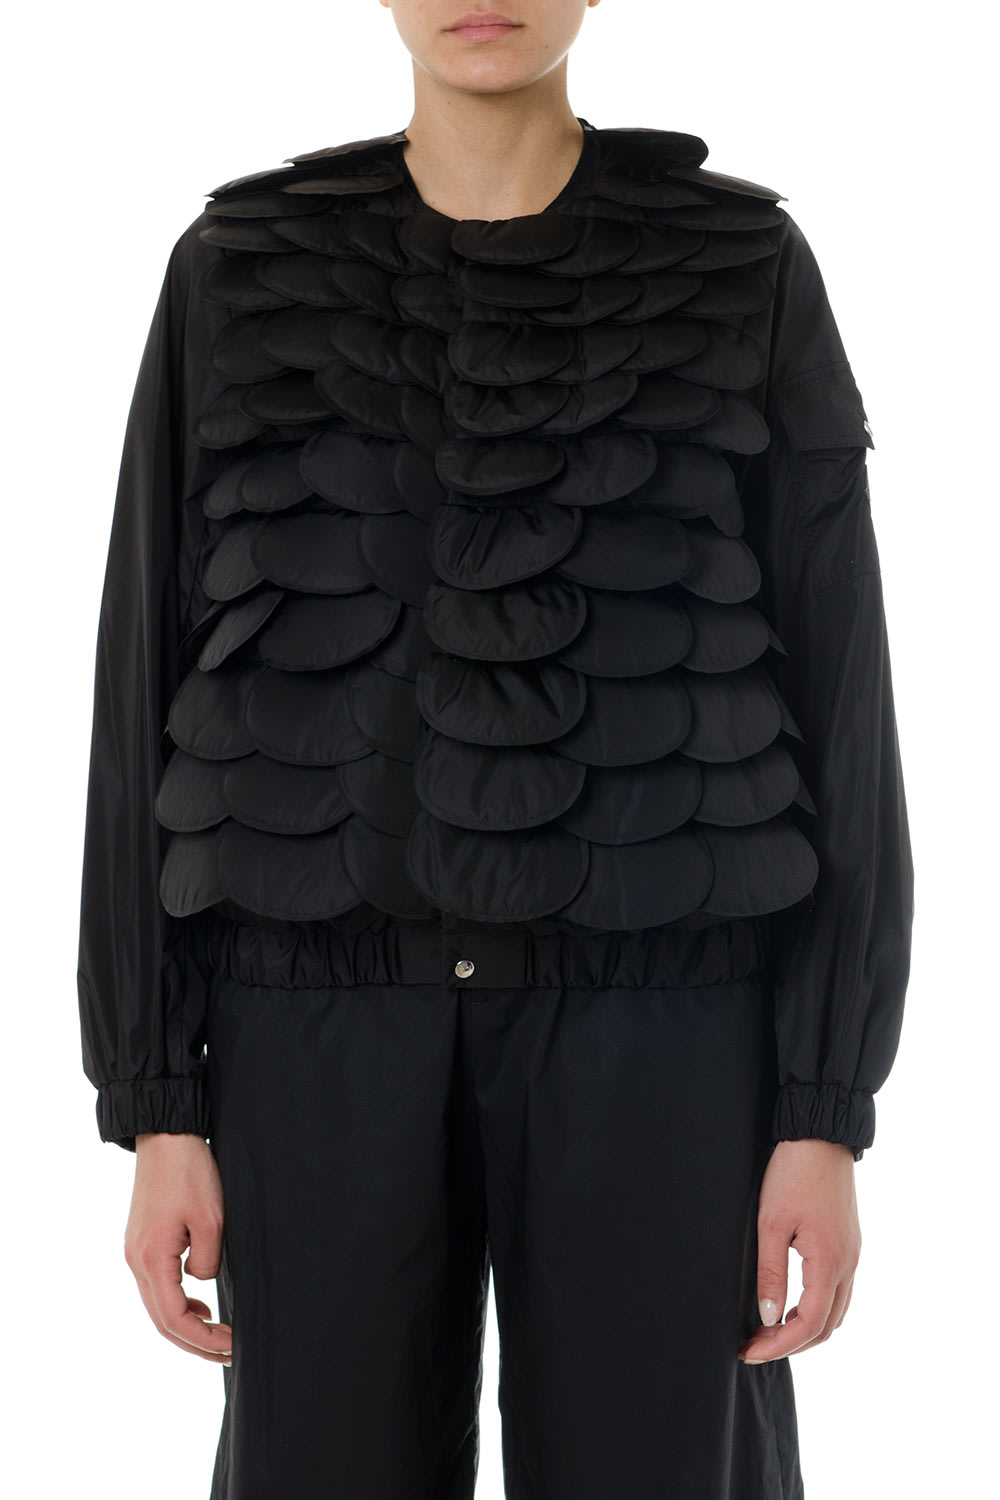 Photo of  Moncler Genius Black Padded Scallop Jacket- shop Moncler Genius jackets online sales